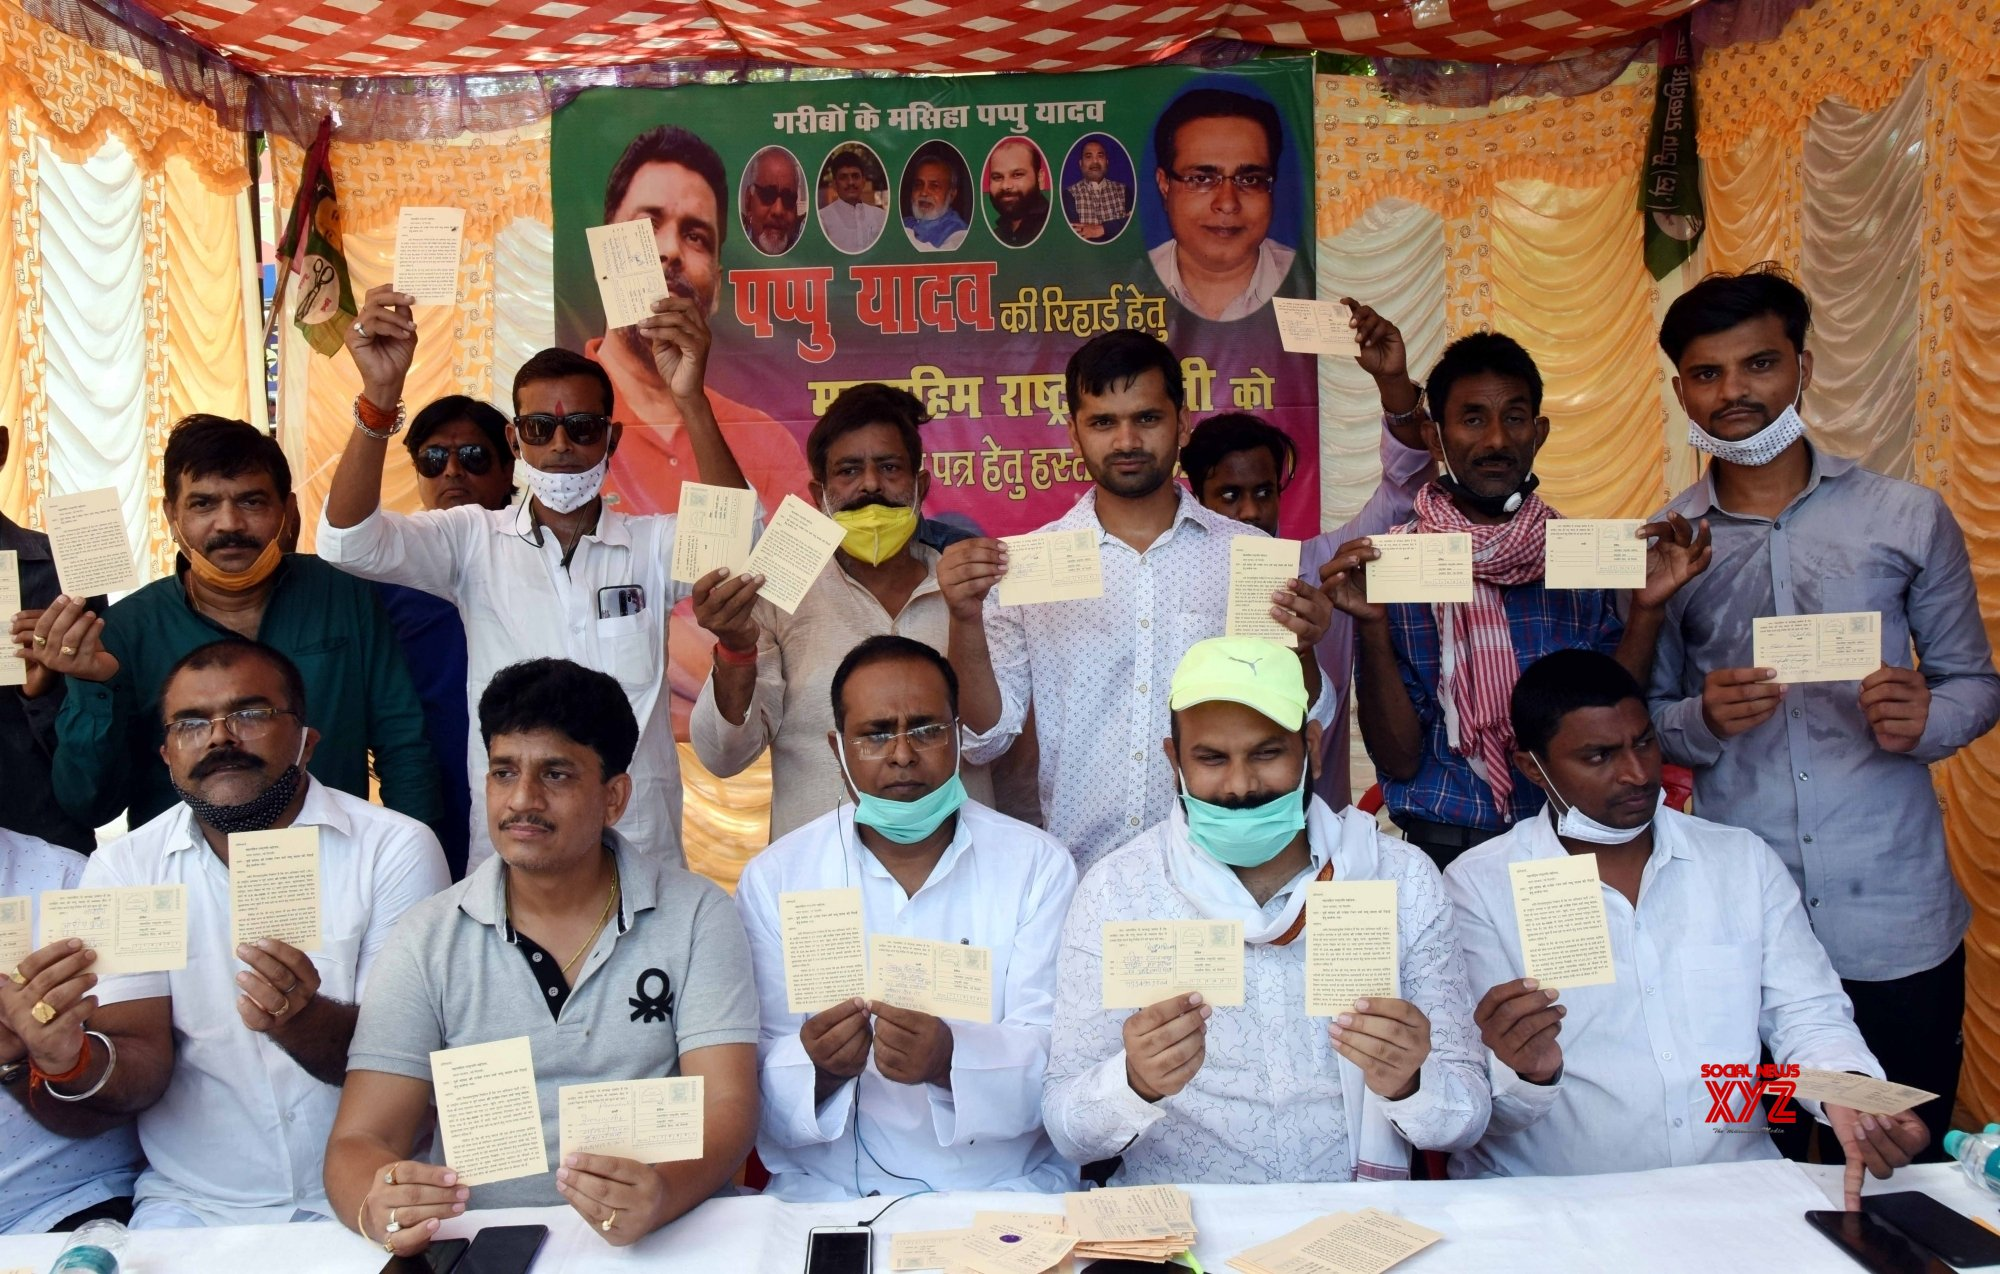 Patna: - Jan Adhikar Party activits shows a Post - Card addressed to President Ram Nath Kovind demanding for the release of party President Pappu Yadav during a signature camp in Patna. #Gallery